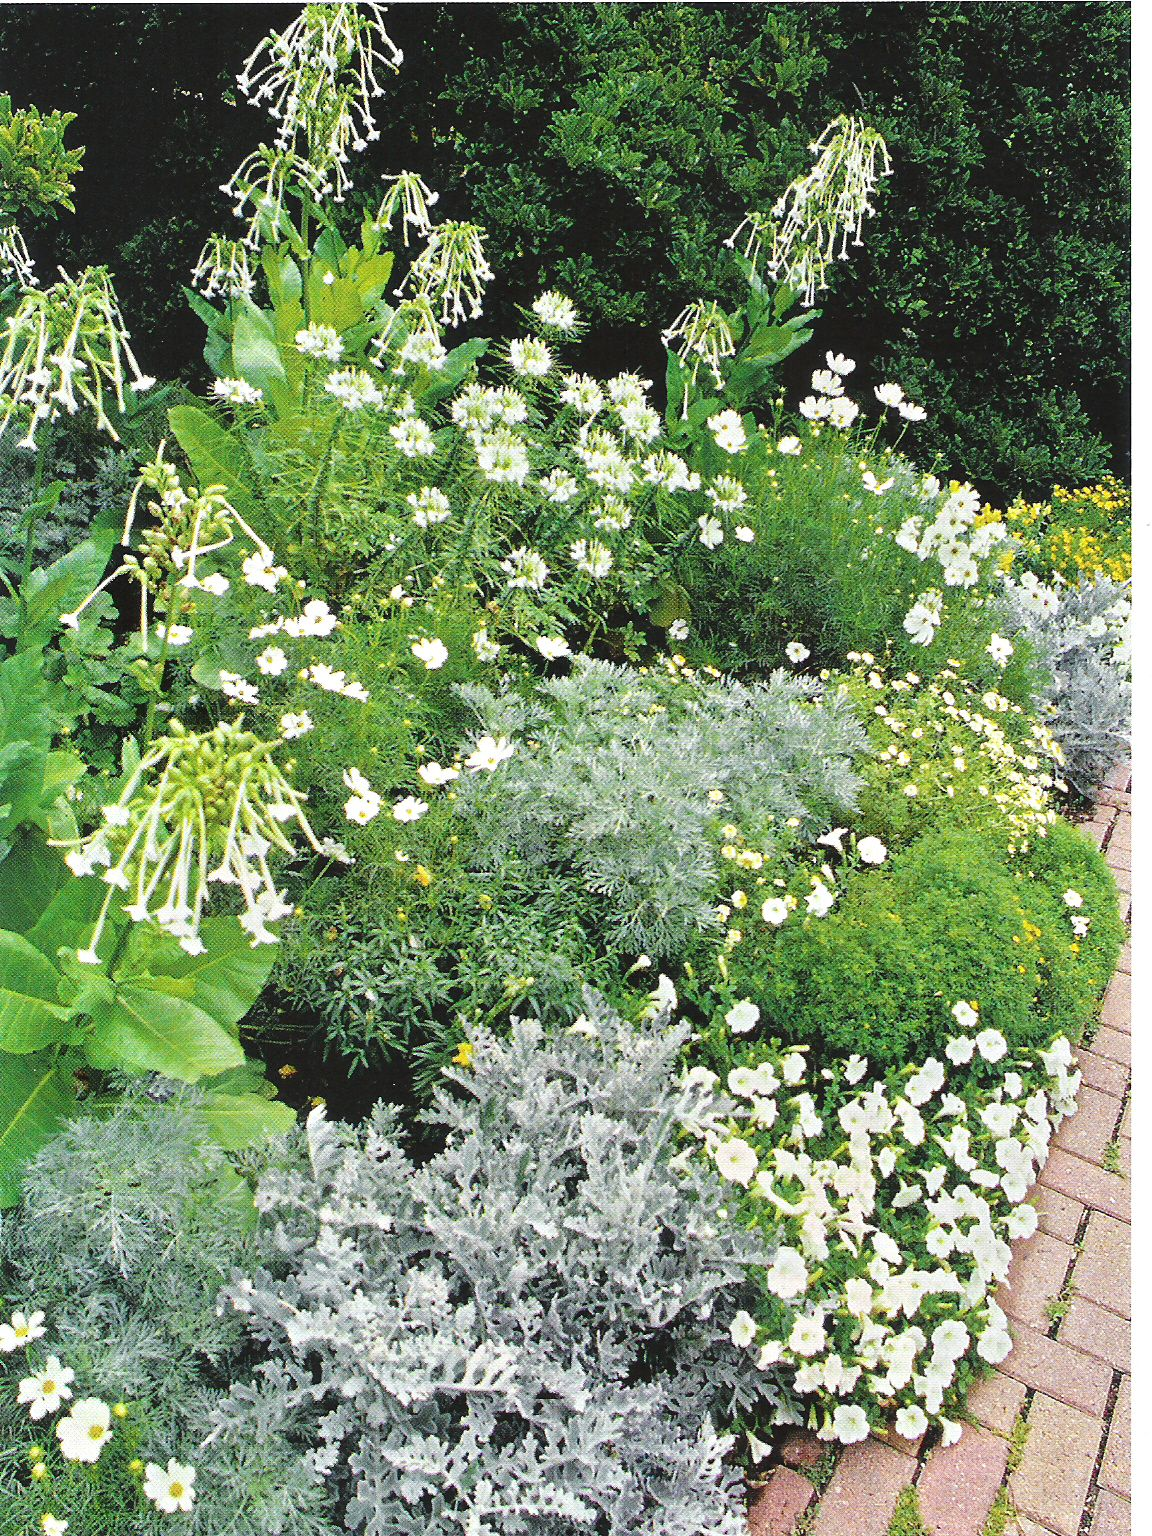 love the combination of white and silver plants.  might add a touch of darker green foliage to really make things pop.